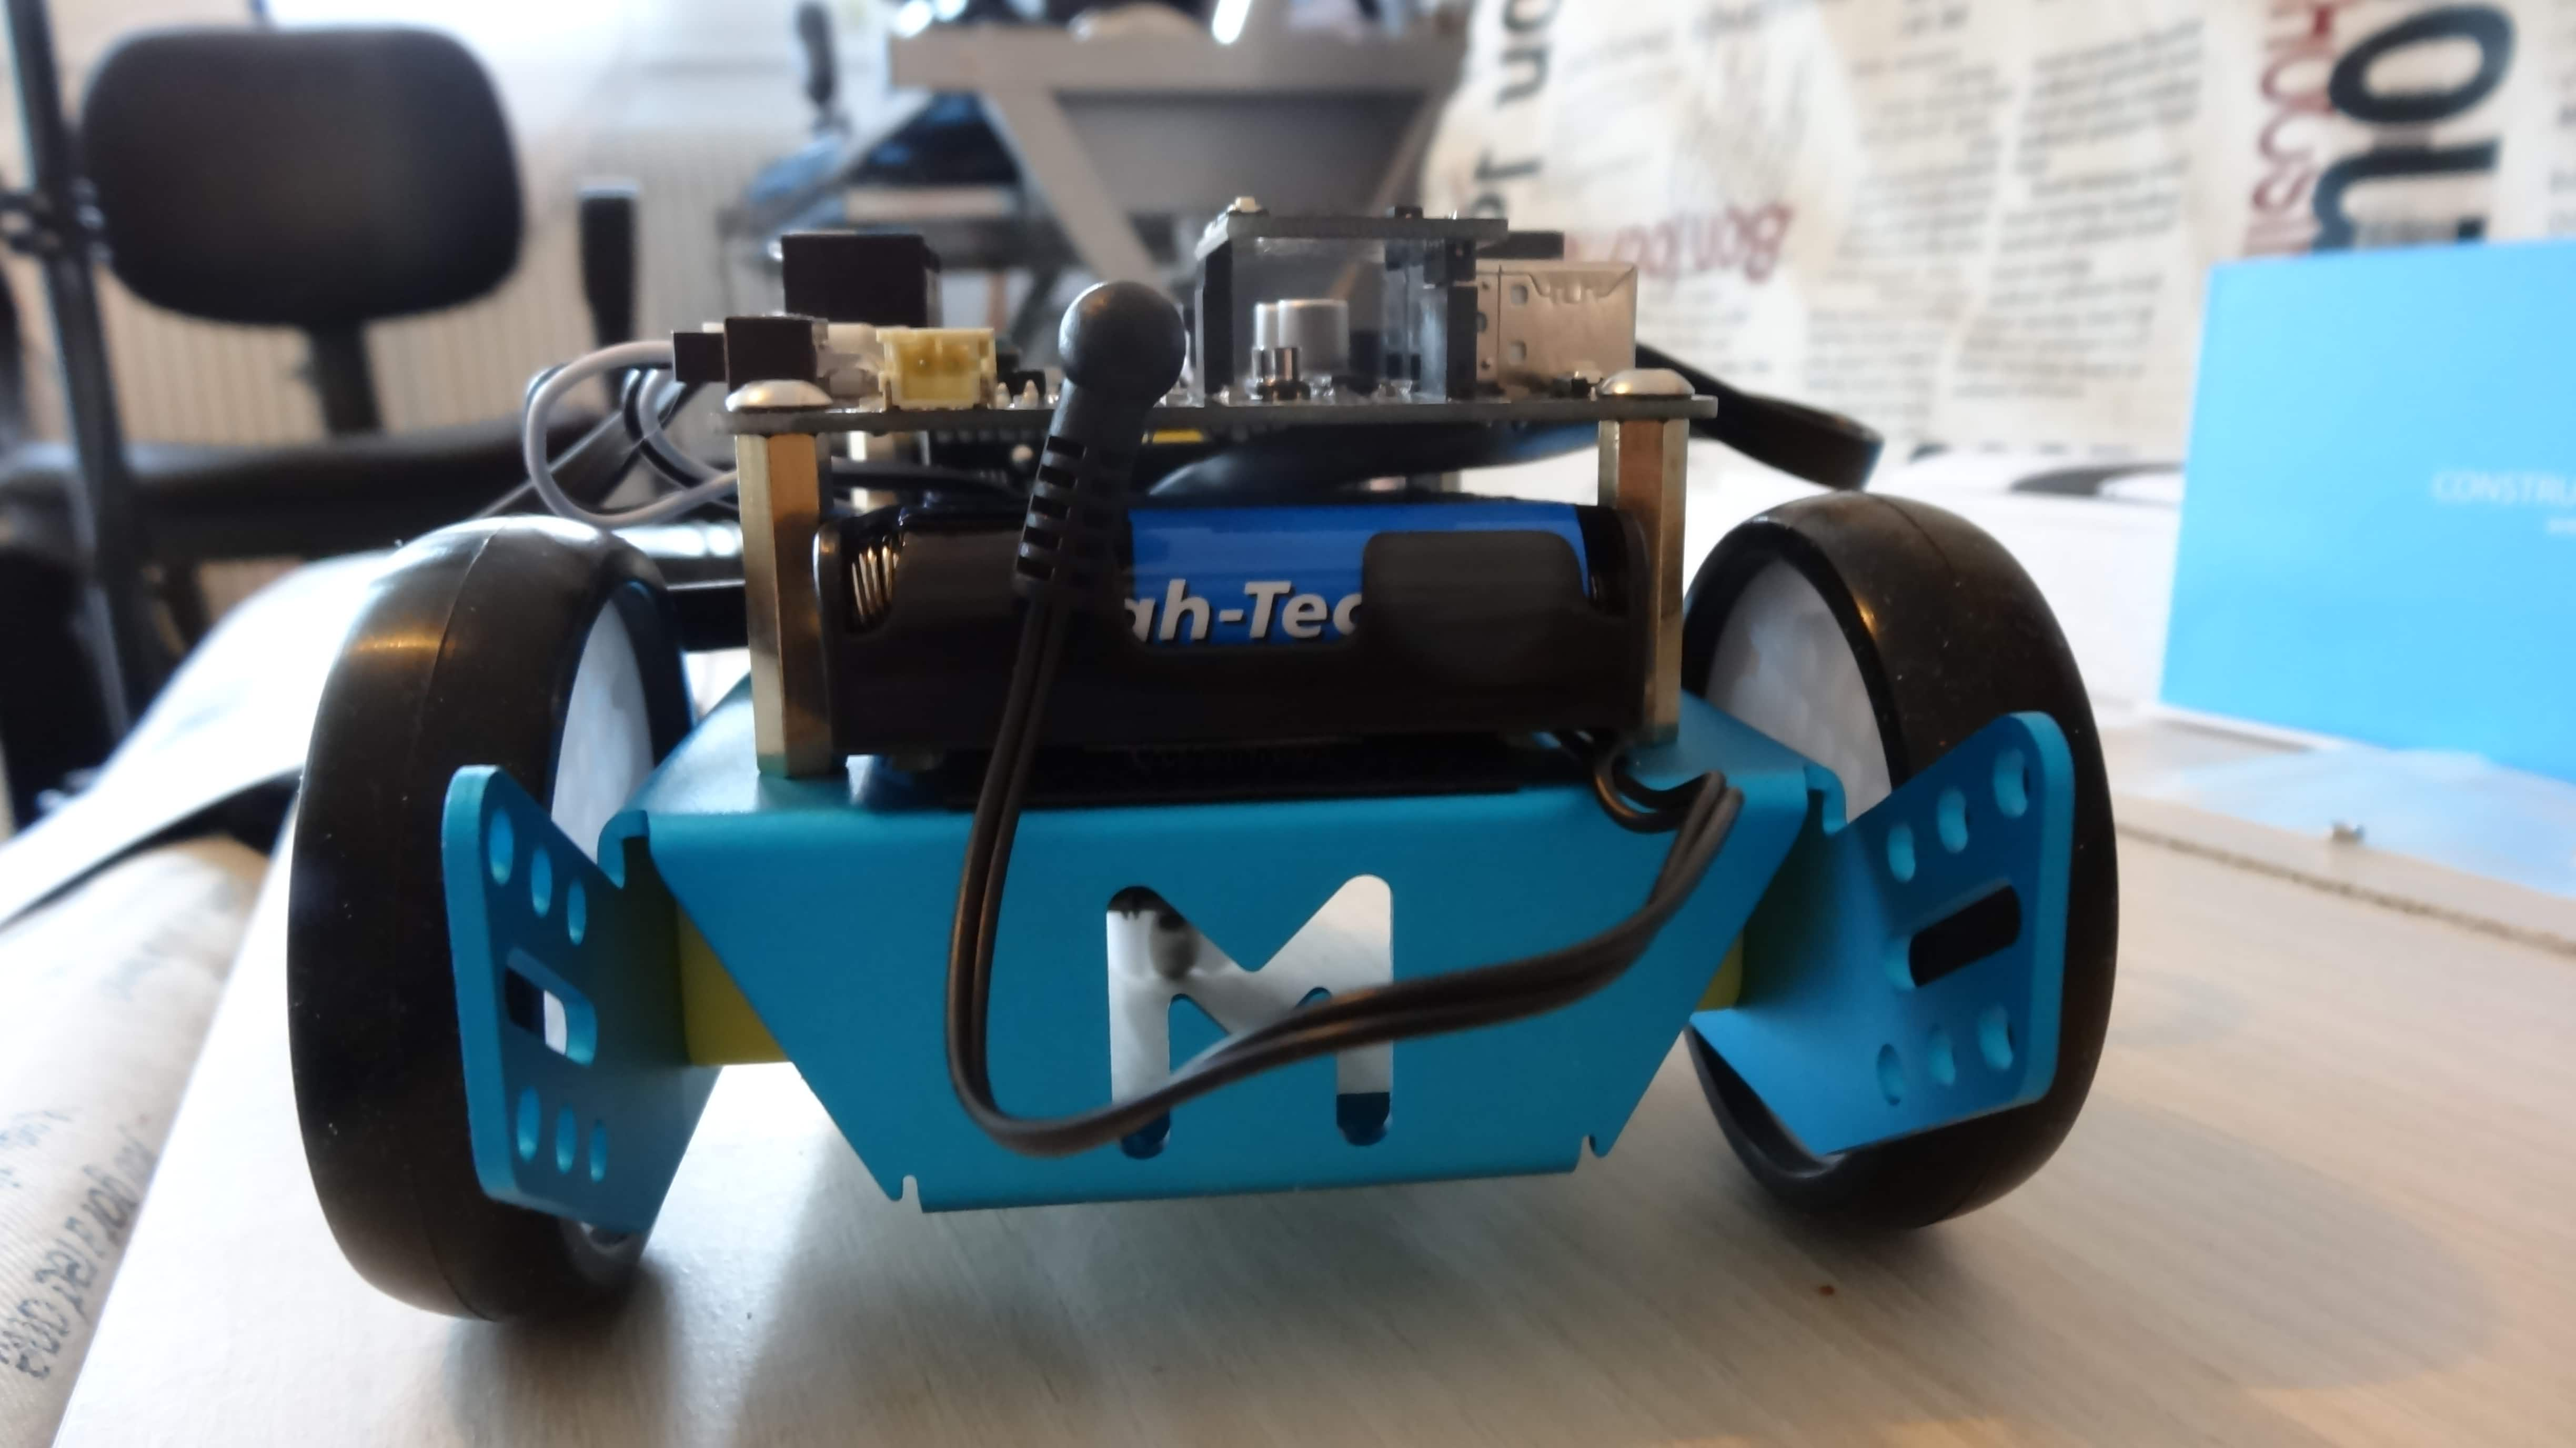 mbot-blue-un-robot-educatif-et-programmable-en-version-2-4-g-tres-interessant-legaragedupc-fr-44